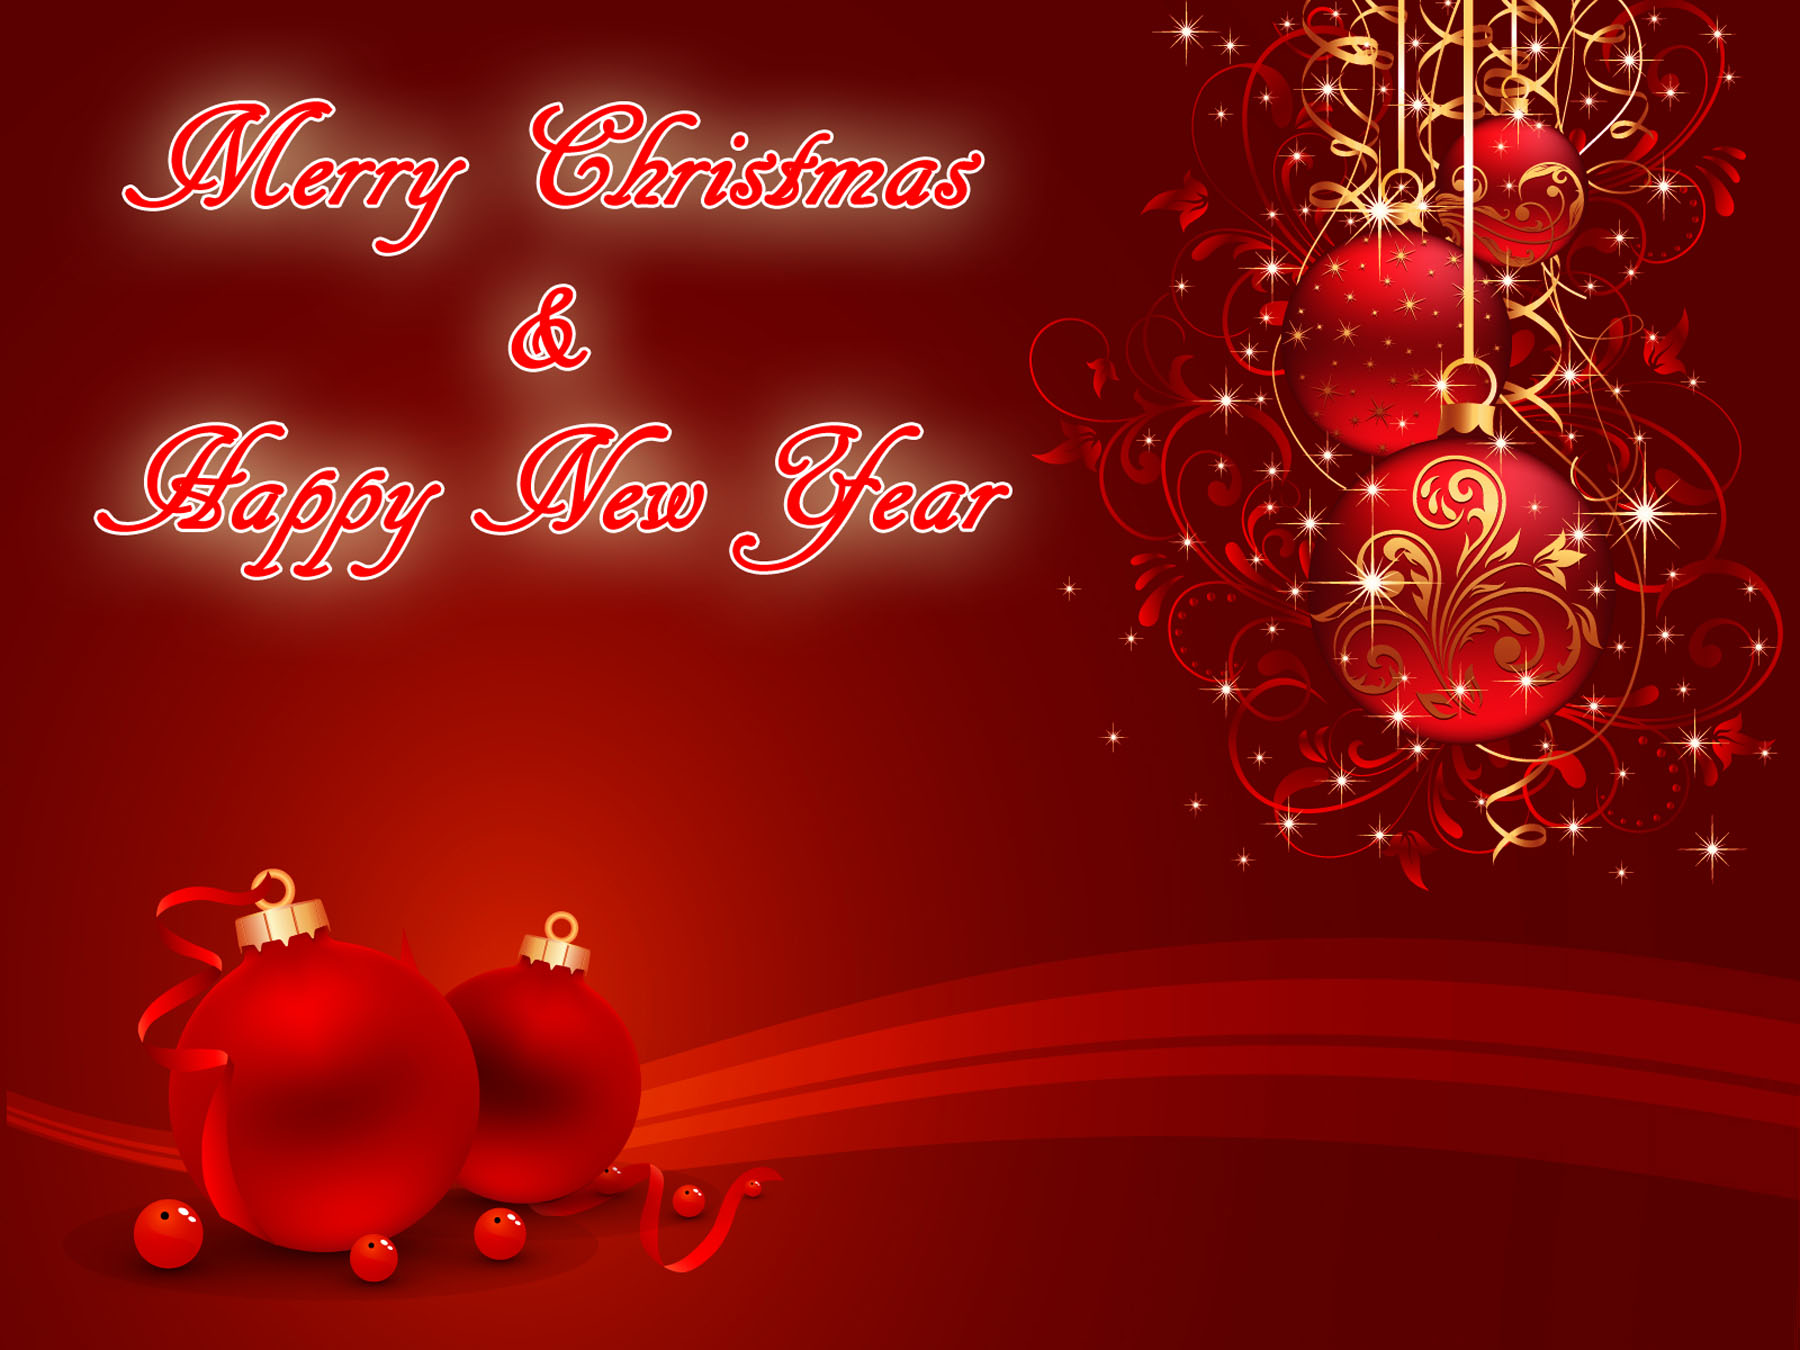 New Year 2014 Christmas 2013 Wallpapers Greeting Cards Travel